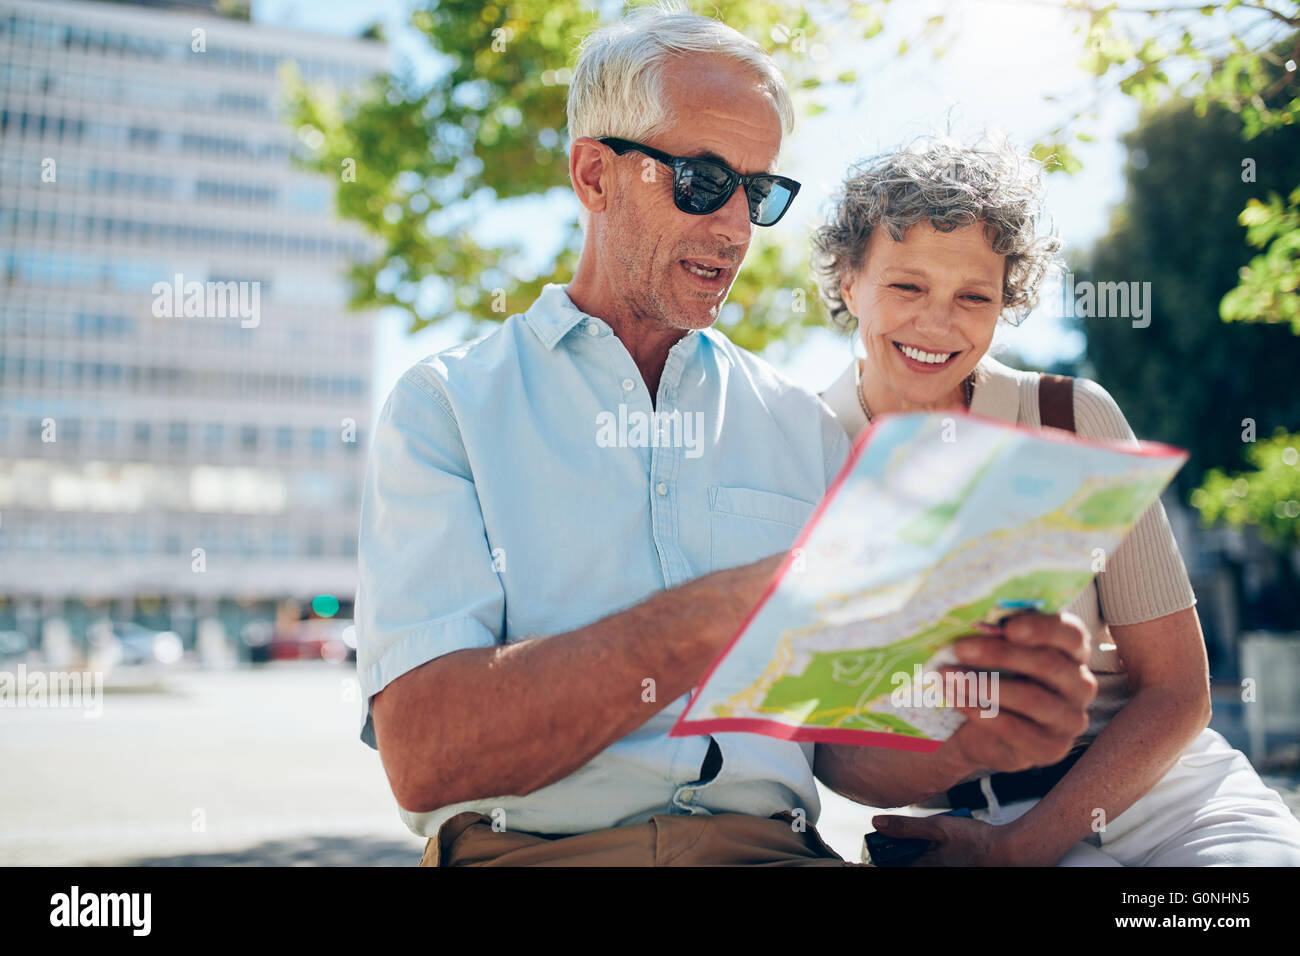 Senior couple looking at city map. Mature man and woman sitting outdoors in city reading a map for direction. - Stock Image